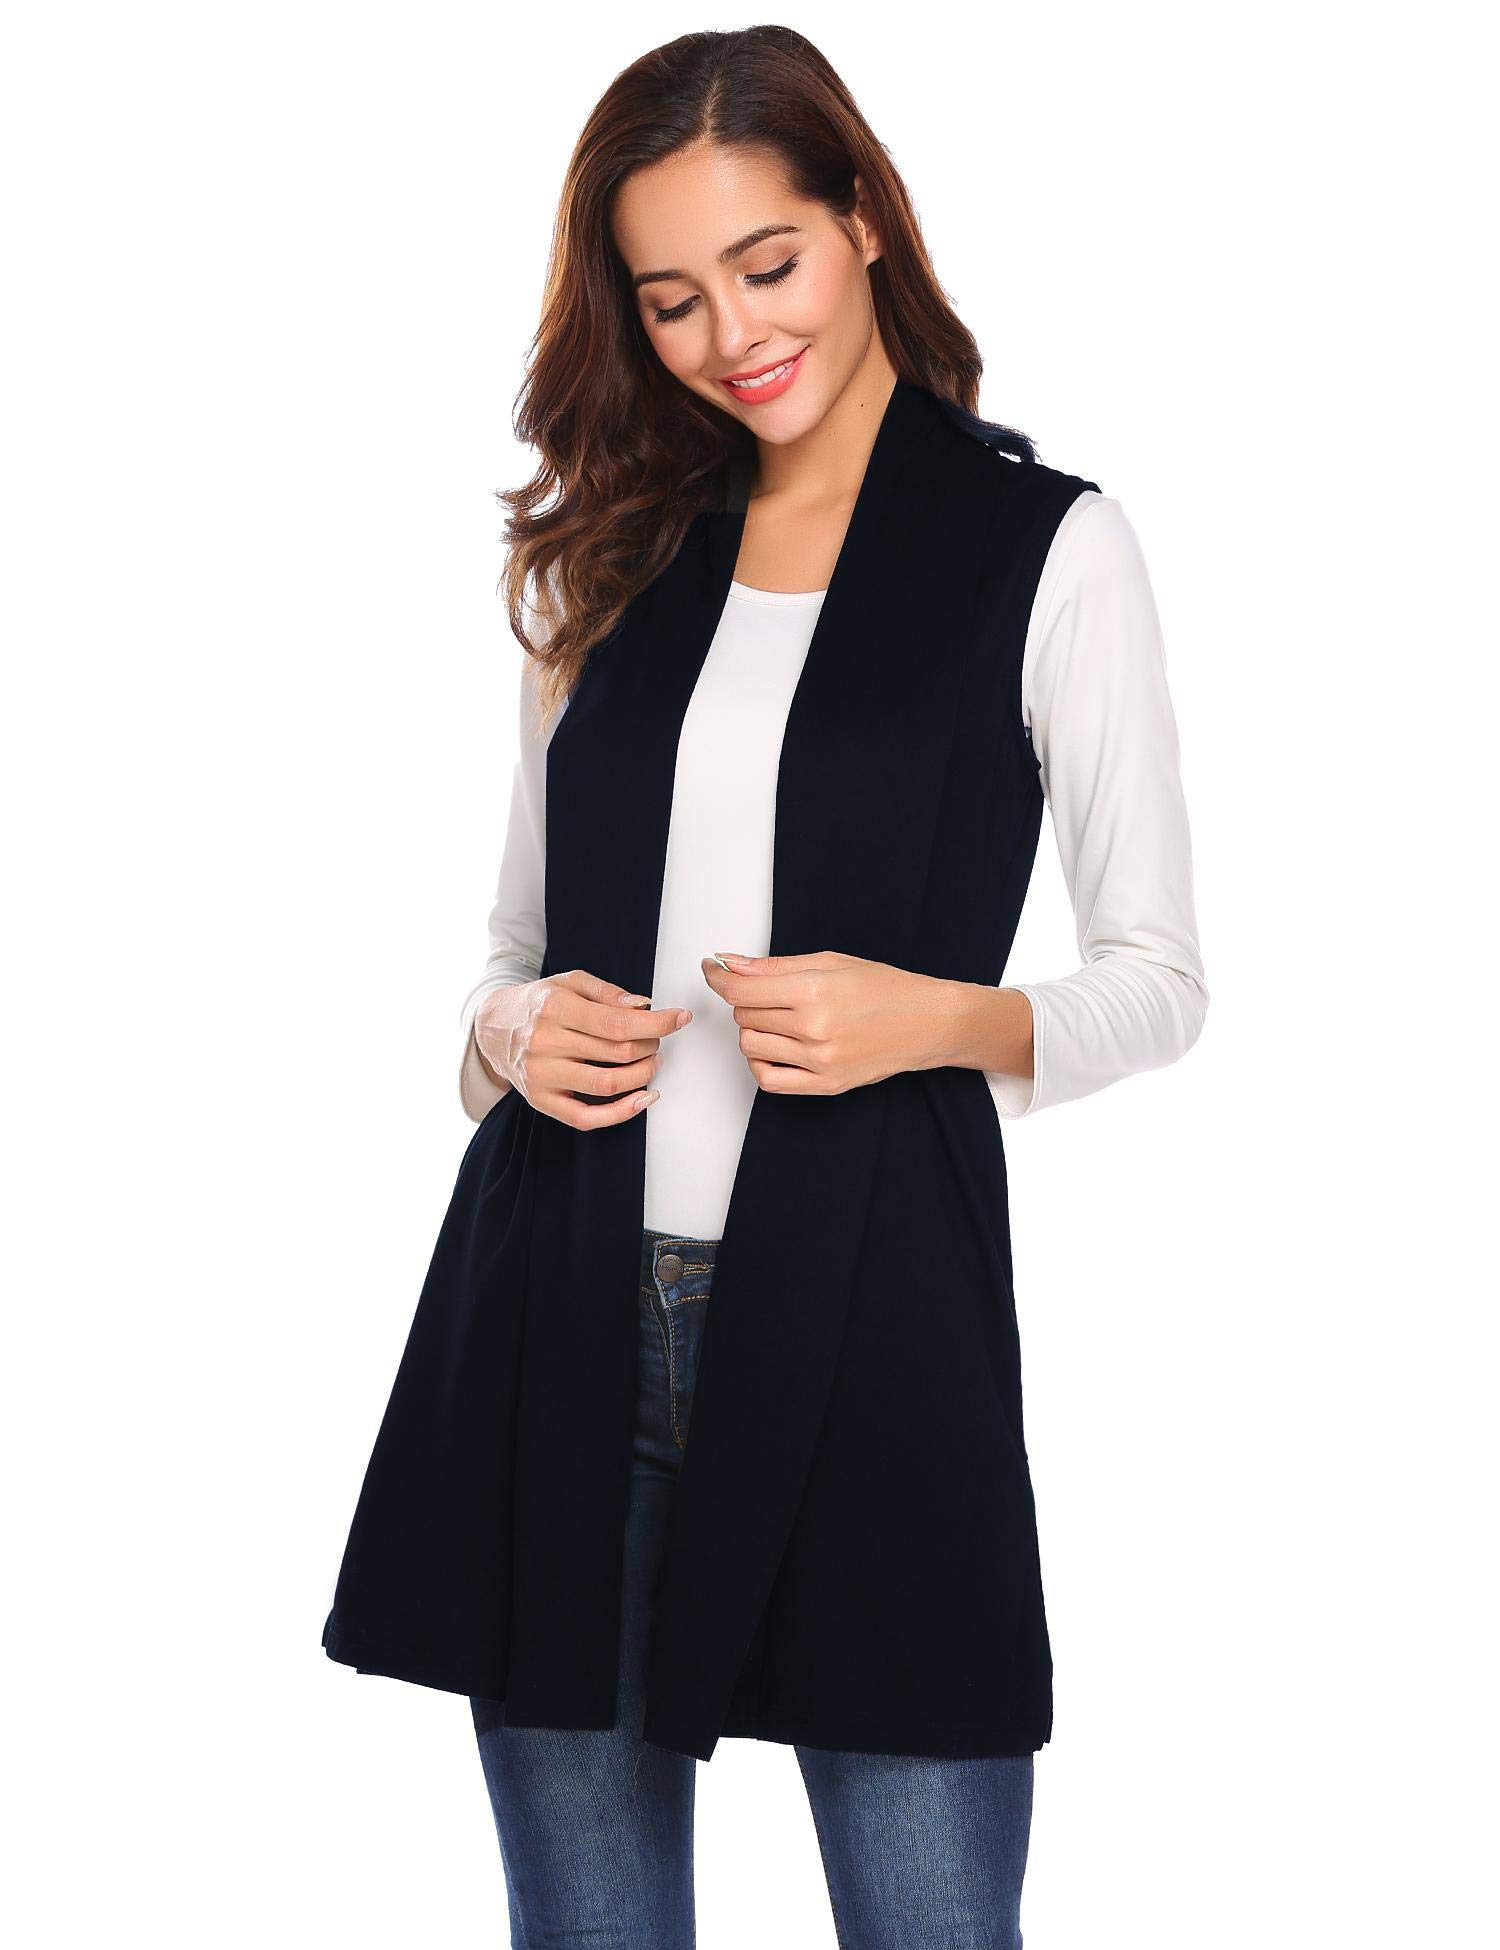 Lunir Ladies Lightweight Sleeveless Ombre Open Front Cardigan Vest Long Cardigan Sweater